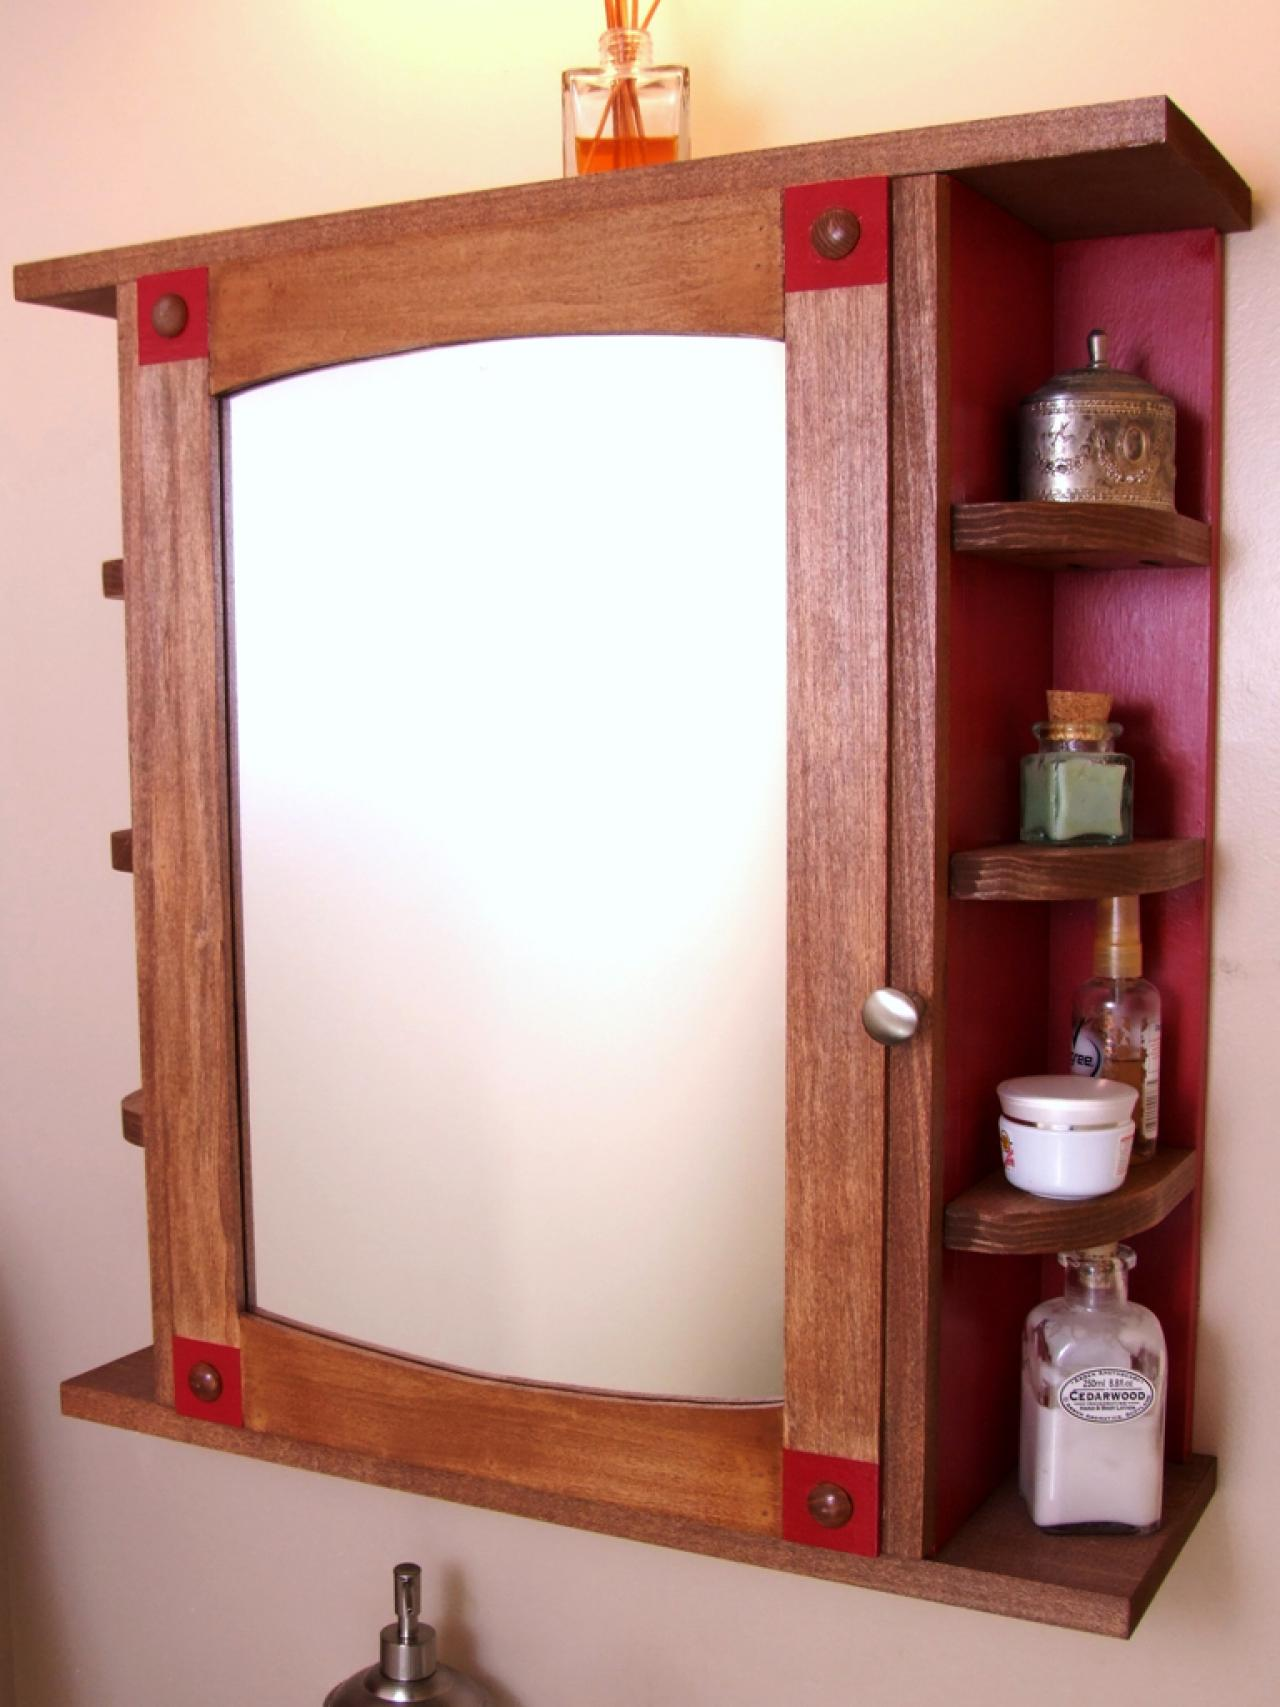 How To Build A Bathroom Medicine Cabinet How Tos Diy